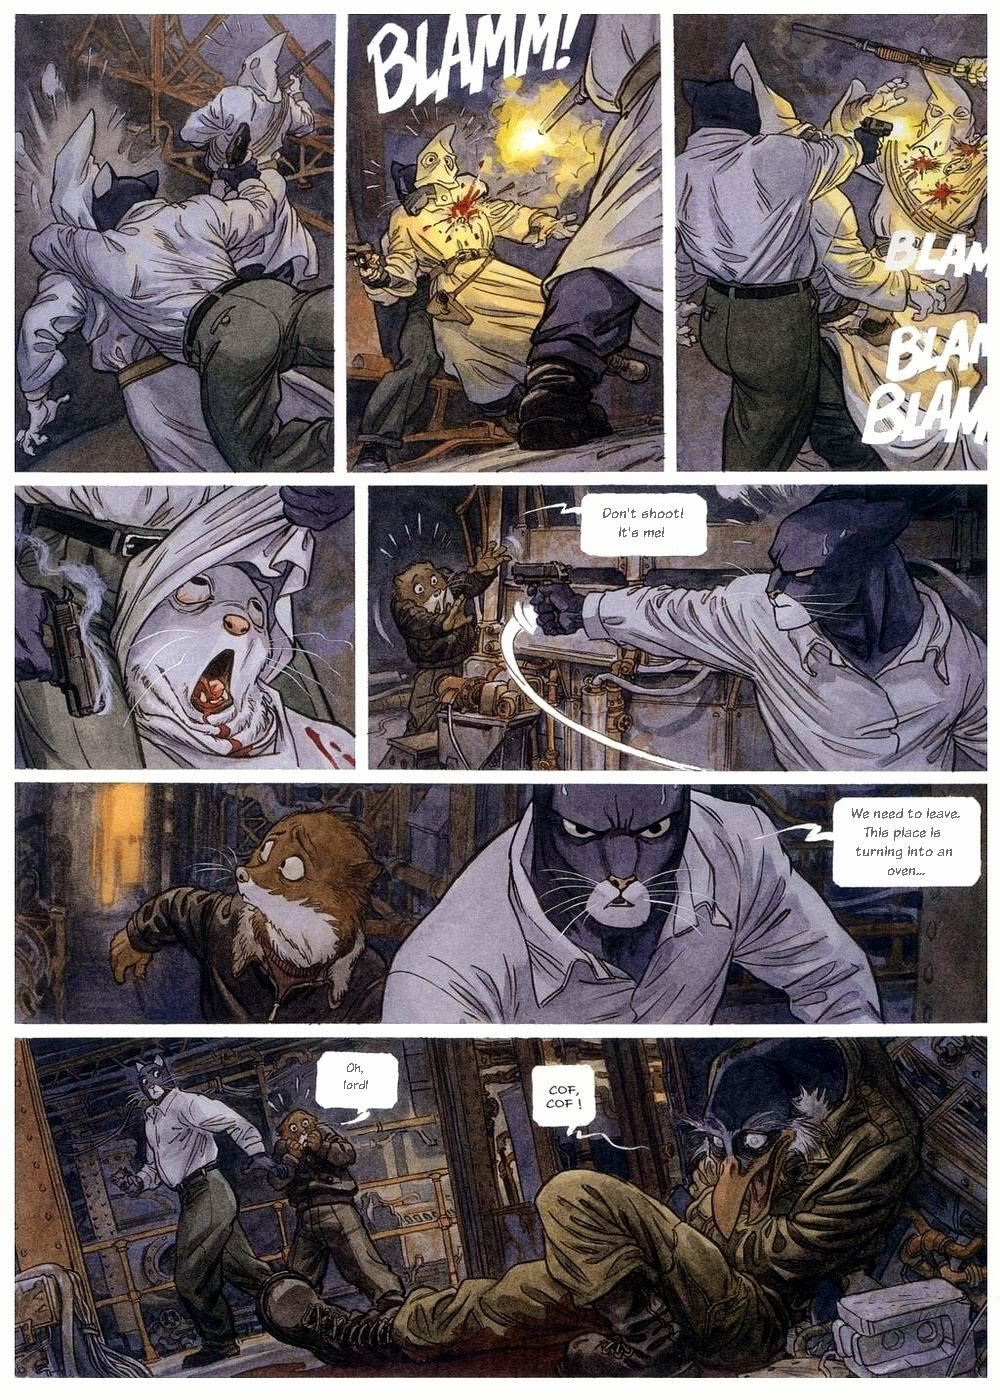 blacksad vol 2 arctic nation viewcomic reading comics online for free 2018. Black Bedroom Furniture Sets. Home Design Ideas